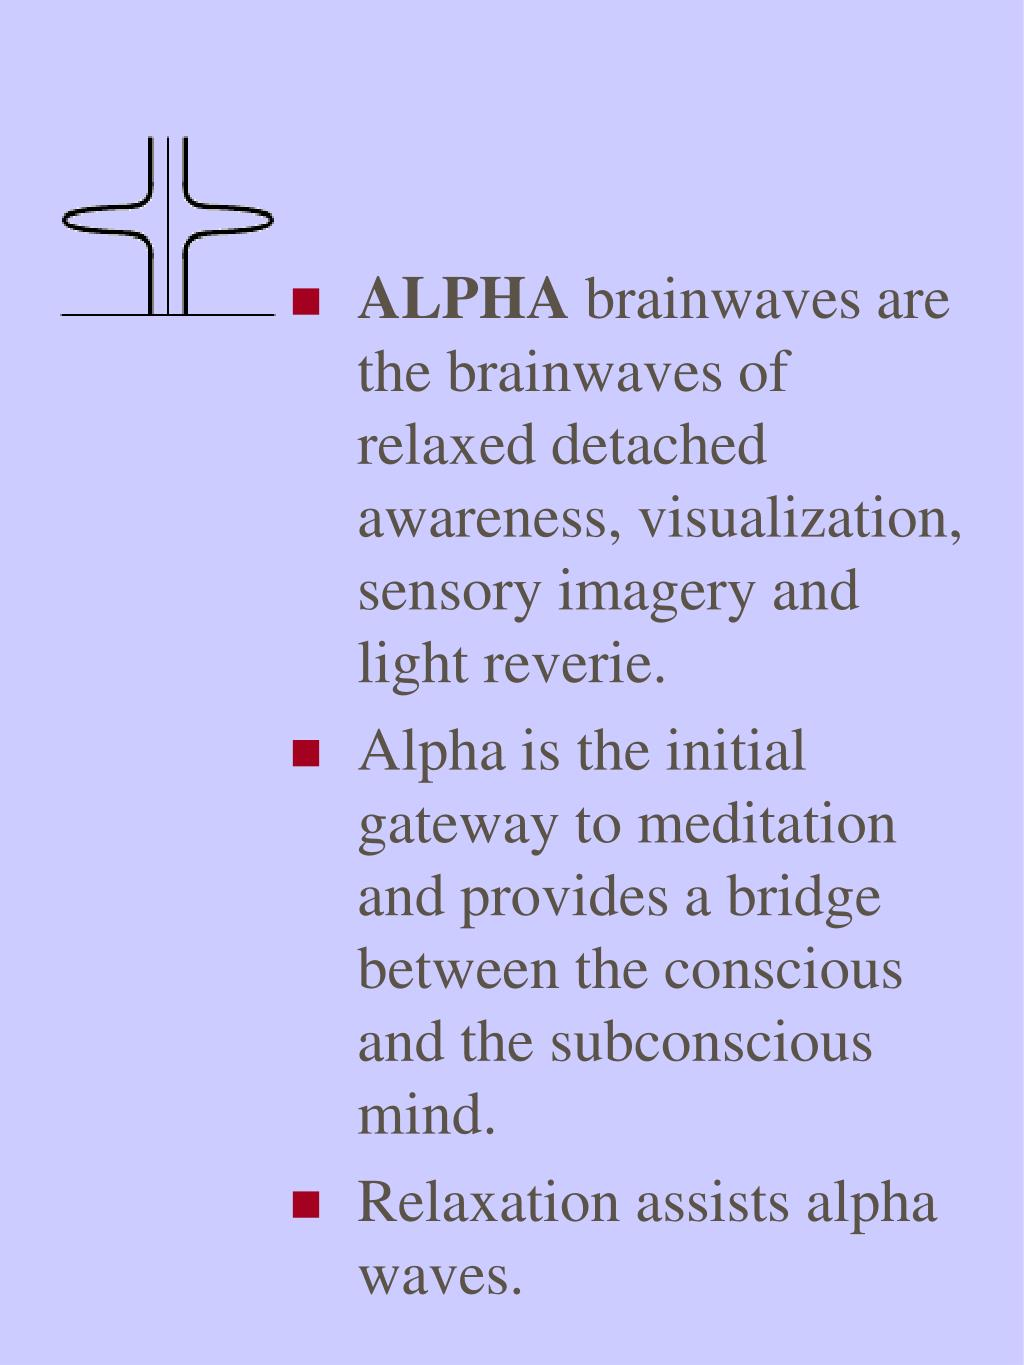 PPT - Meditation - The Laser of the Mind PowerPoint